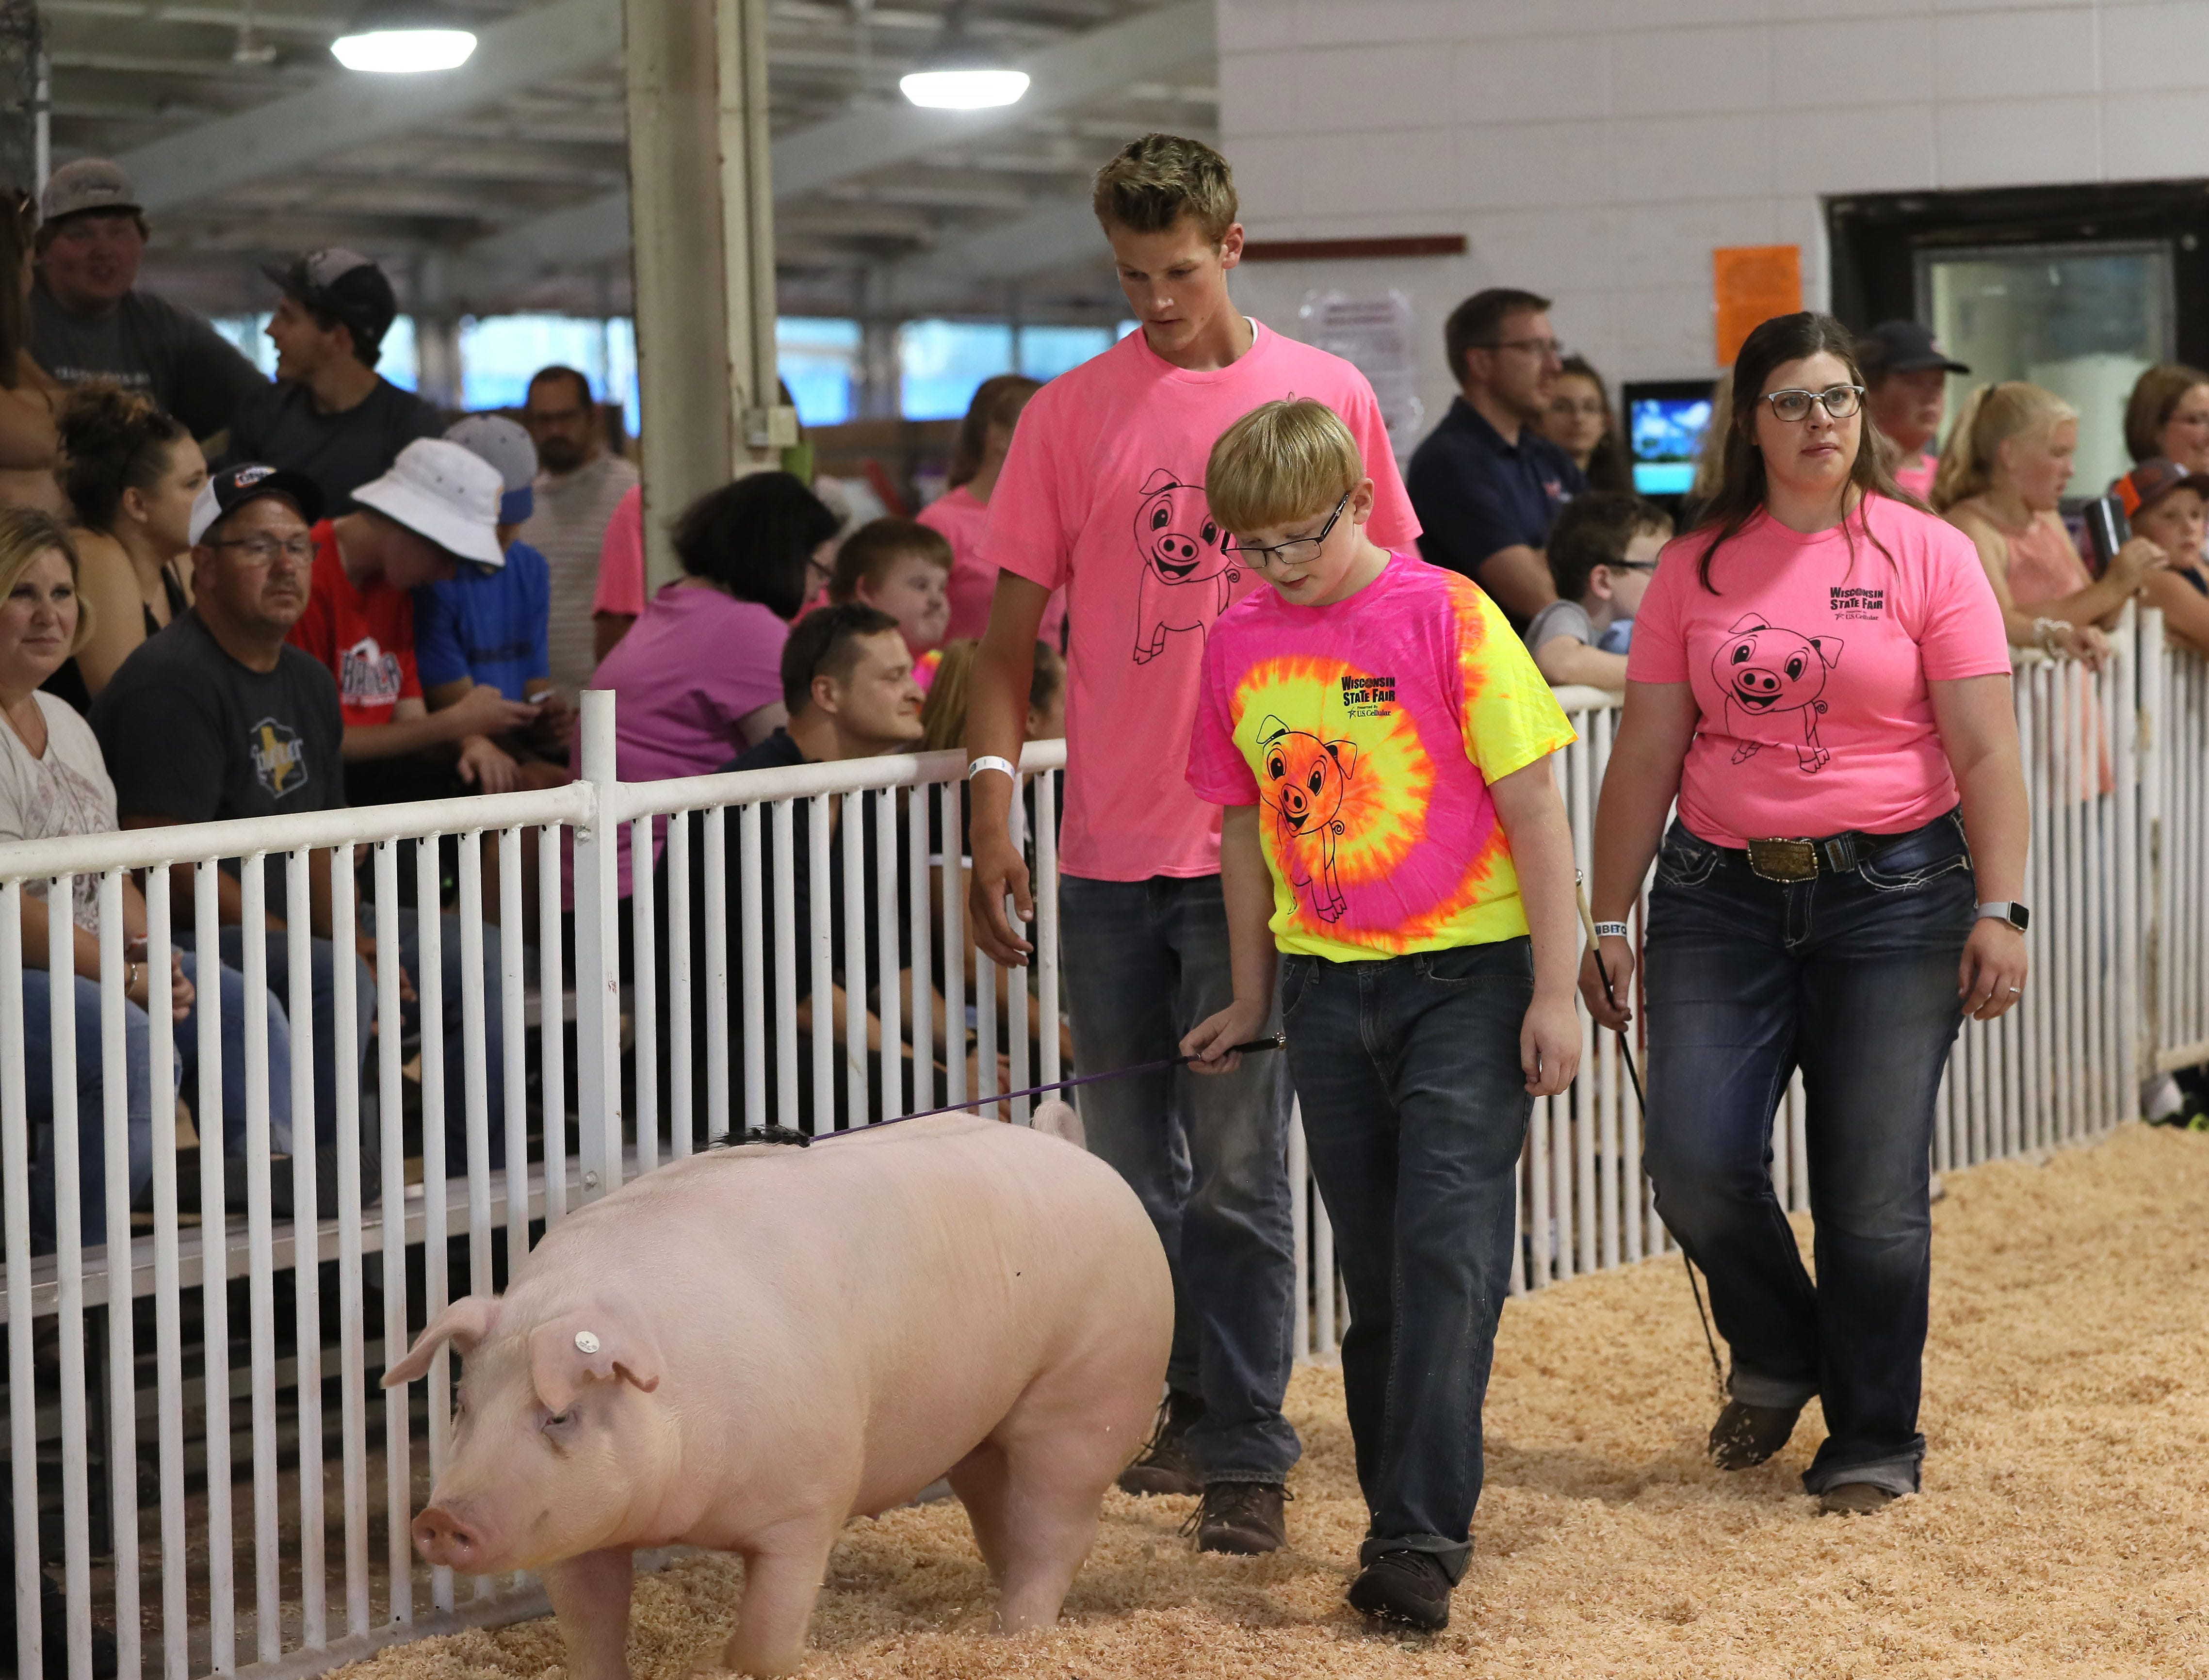 Sam Incha, 10, of Cambridge shows a pig named Ida around the ring at Wisconsin State Fair, with help from mentors Morgan Fitzsimmons (right), 19, of Mineral Point, and Tanner London (center), 18, of Clinton. The All for One Swine Show gives youth with intellectual disabilities the chance to show a pig at the state fair.